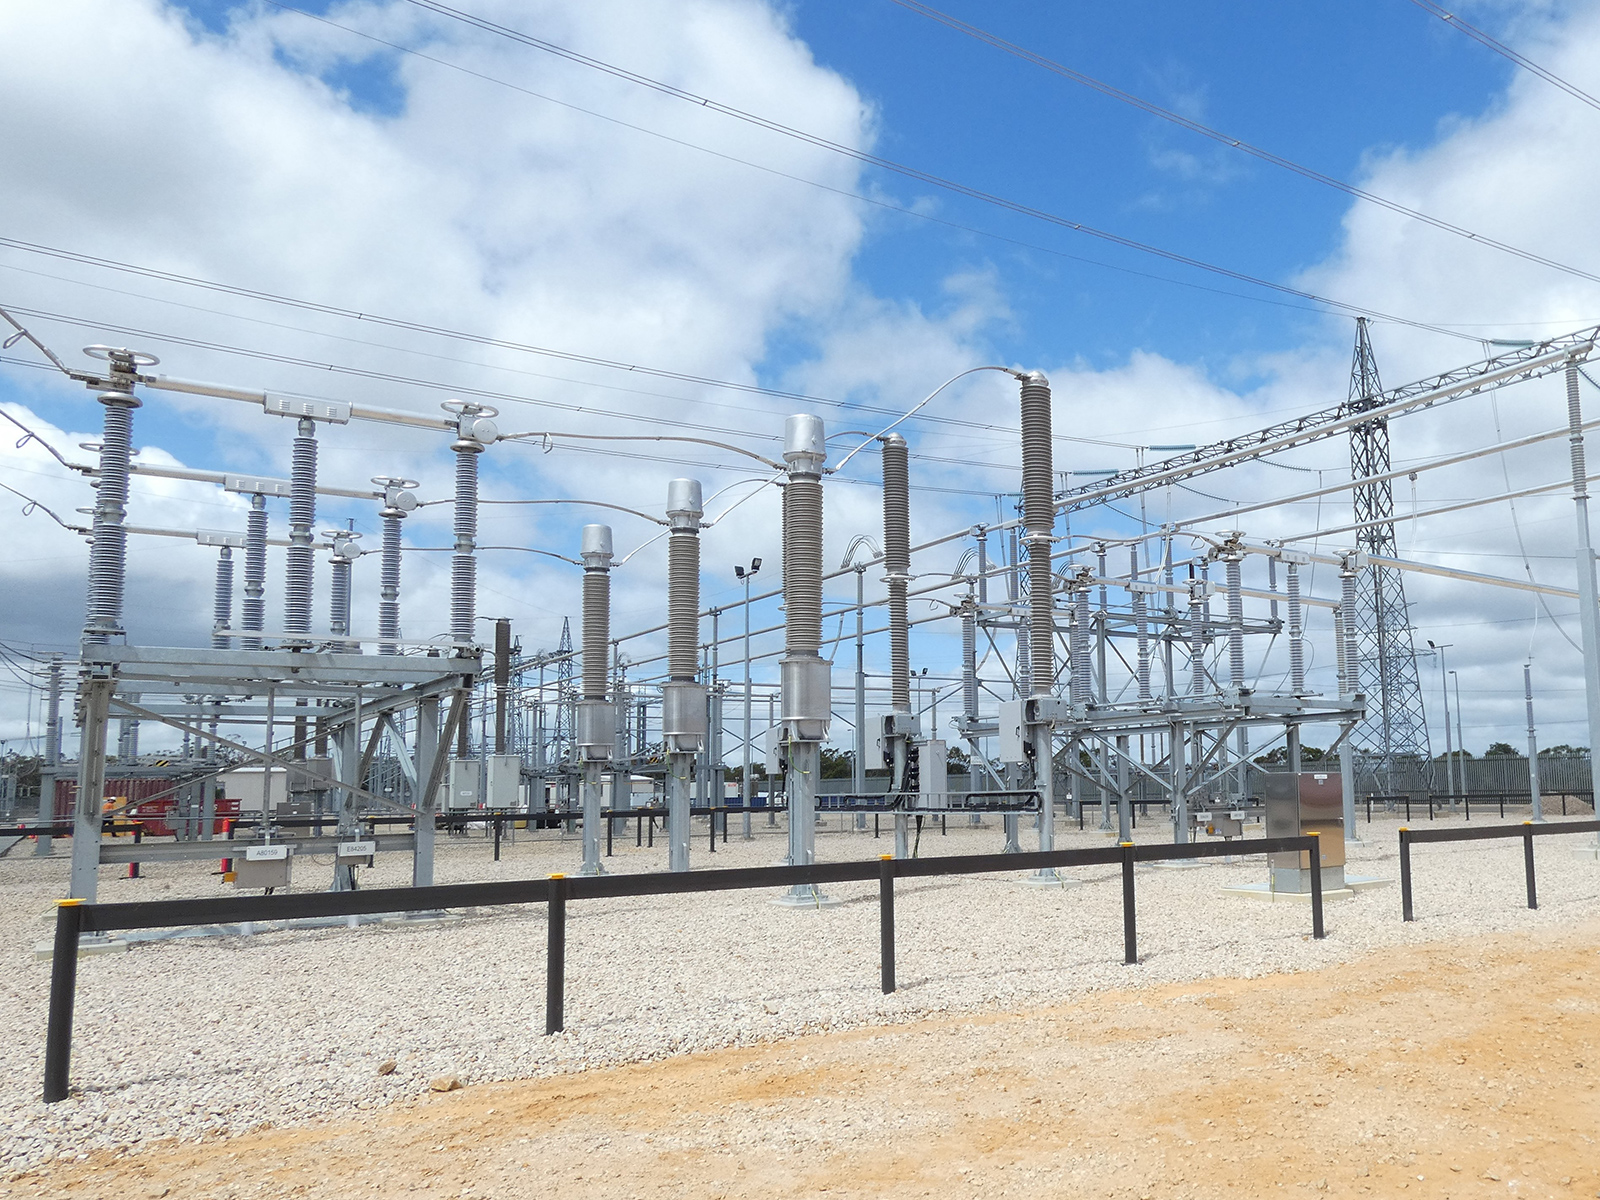 A power substation in South Australia's Cherry Gardens.